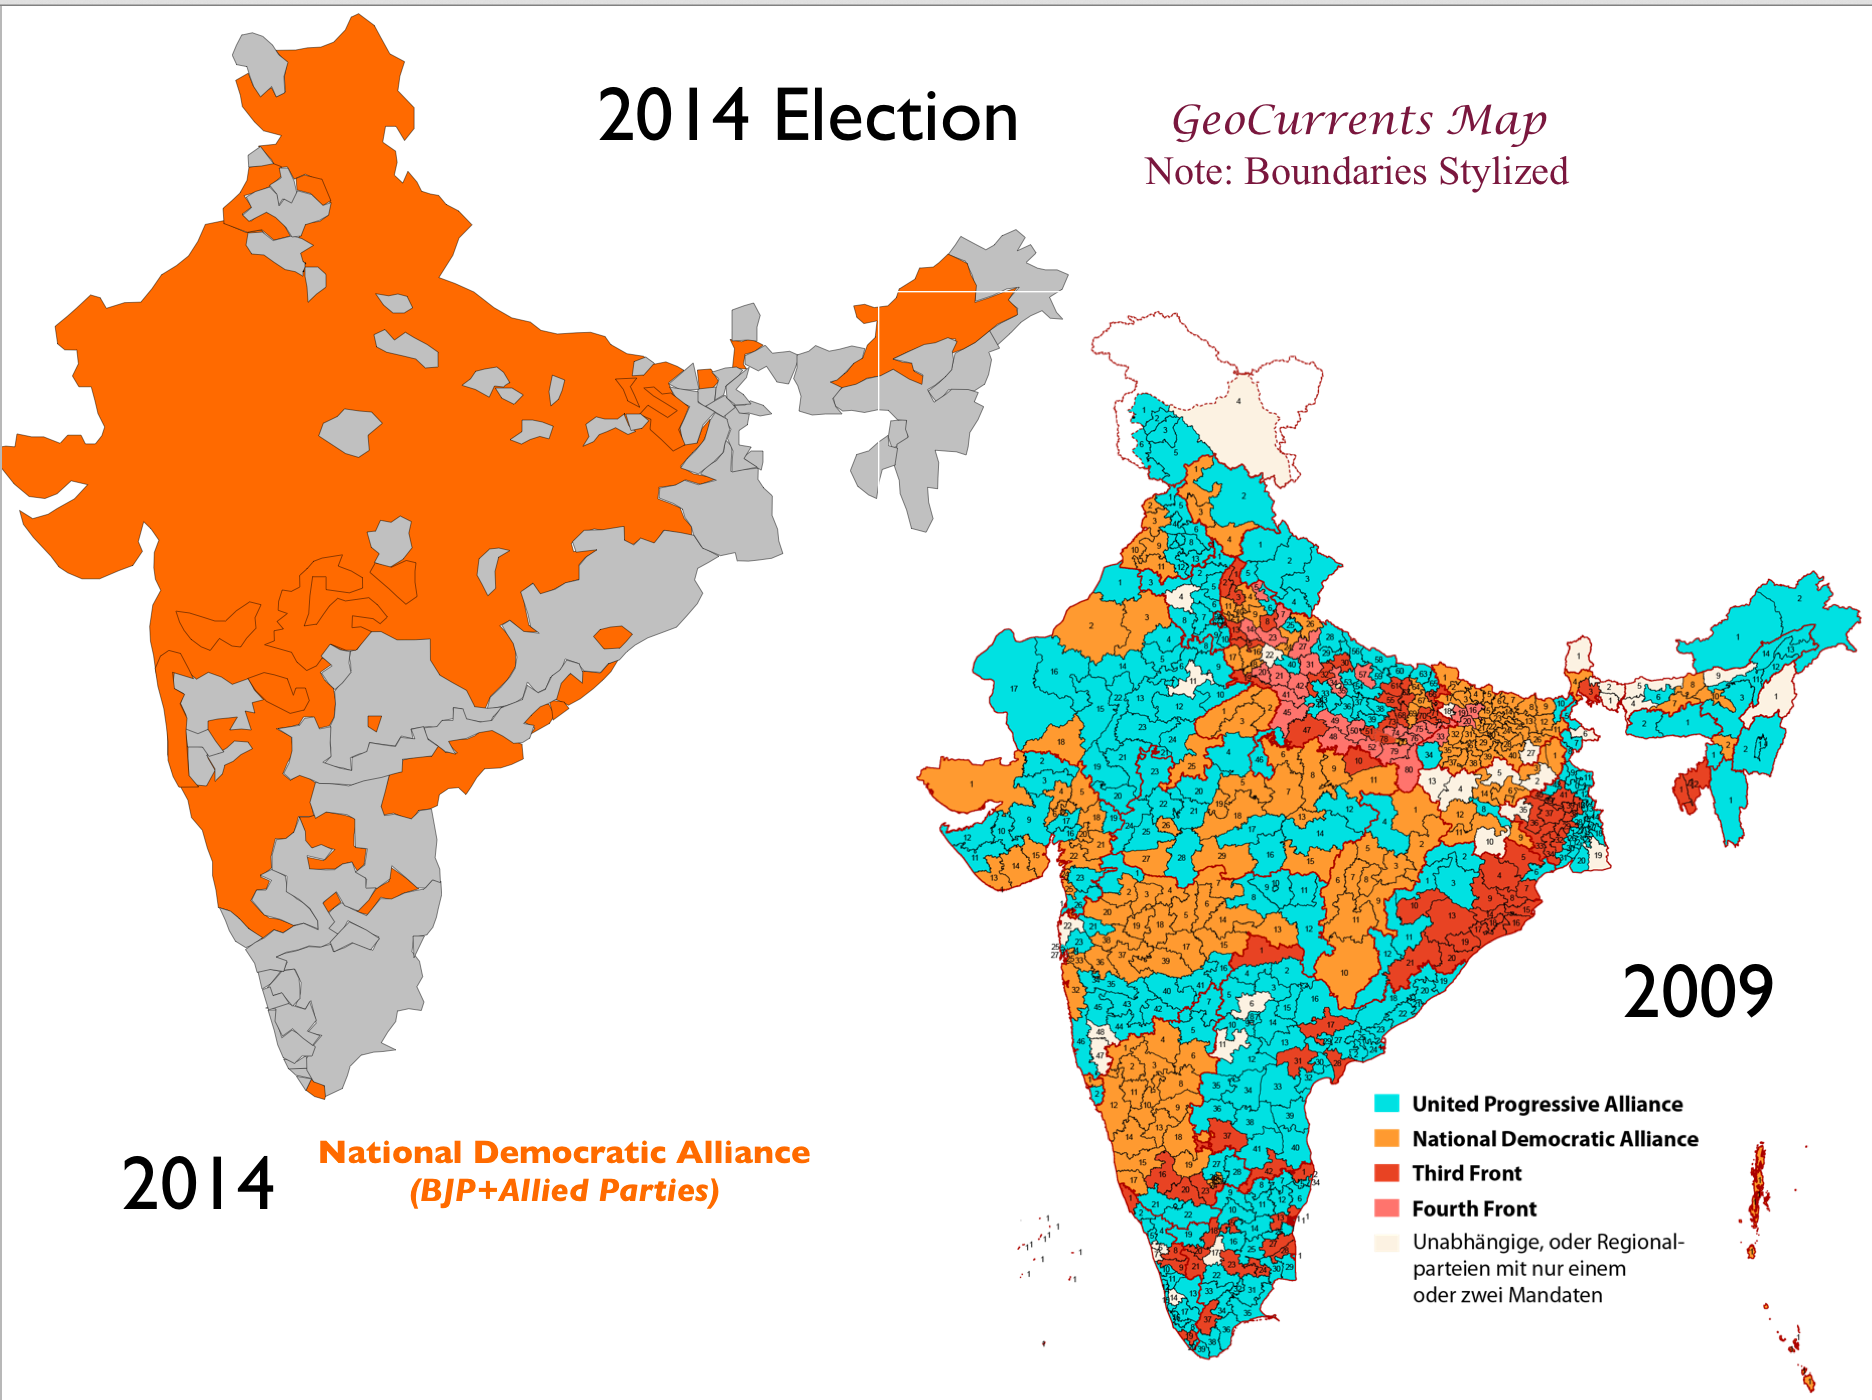 India Map 2014 Regional Patterns in India's 2014 General Election